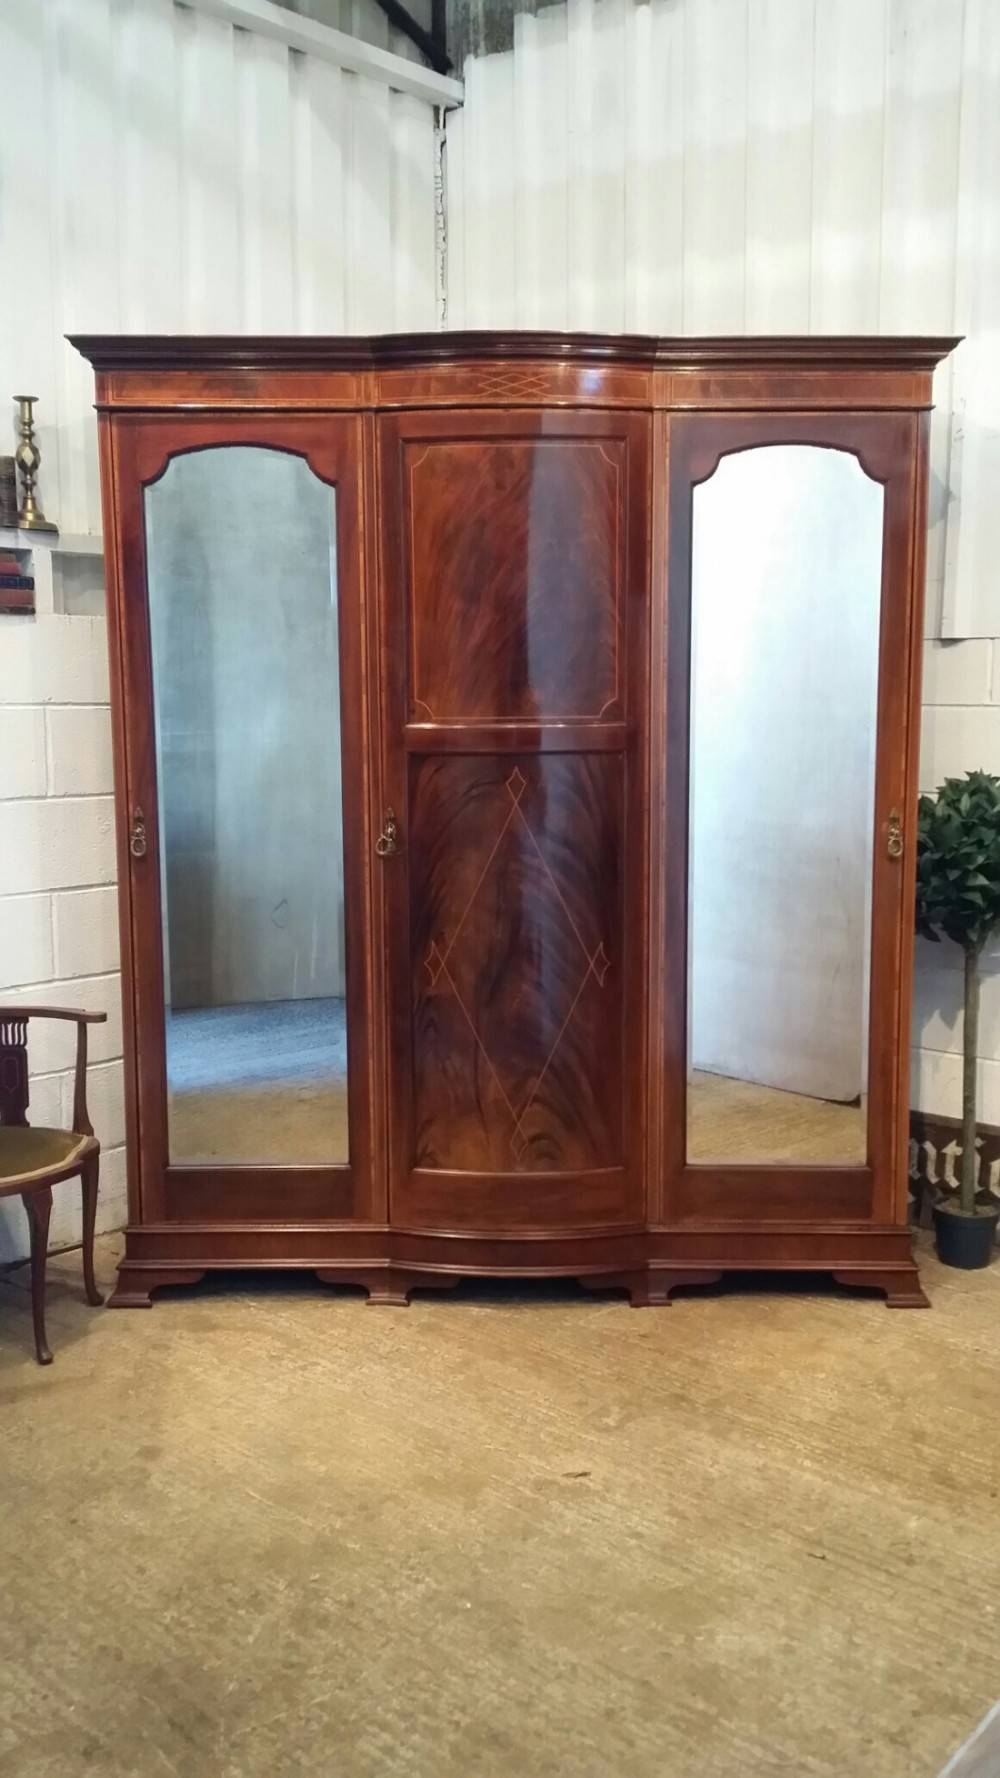 Antique Edwardian Inlaid Mahogany Triple Bow Breakfront Wardrobe throughout Antique Breakfront Wardrobe (Image 2 of 30)